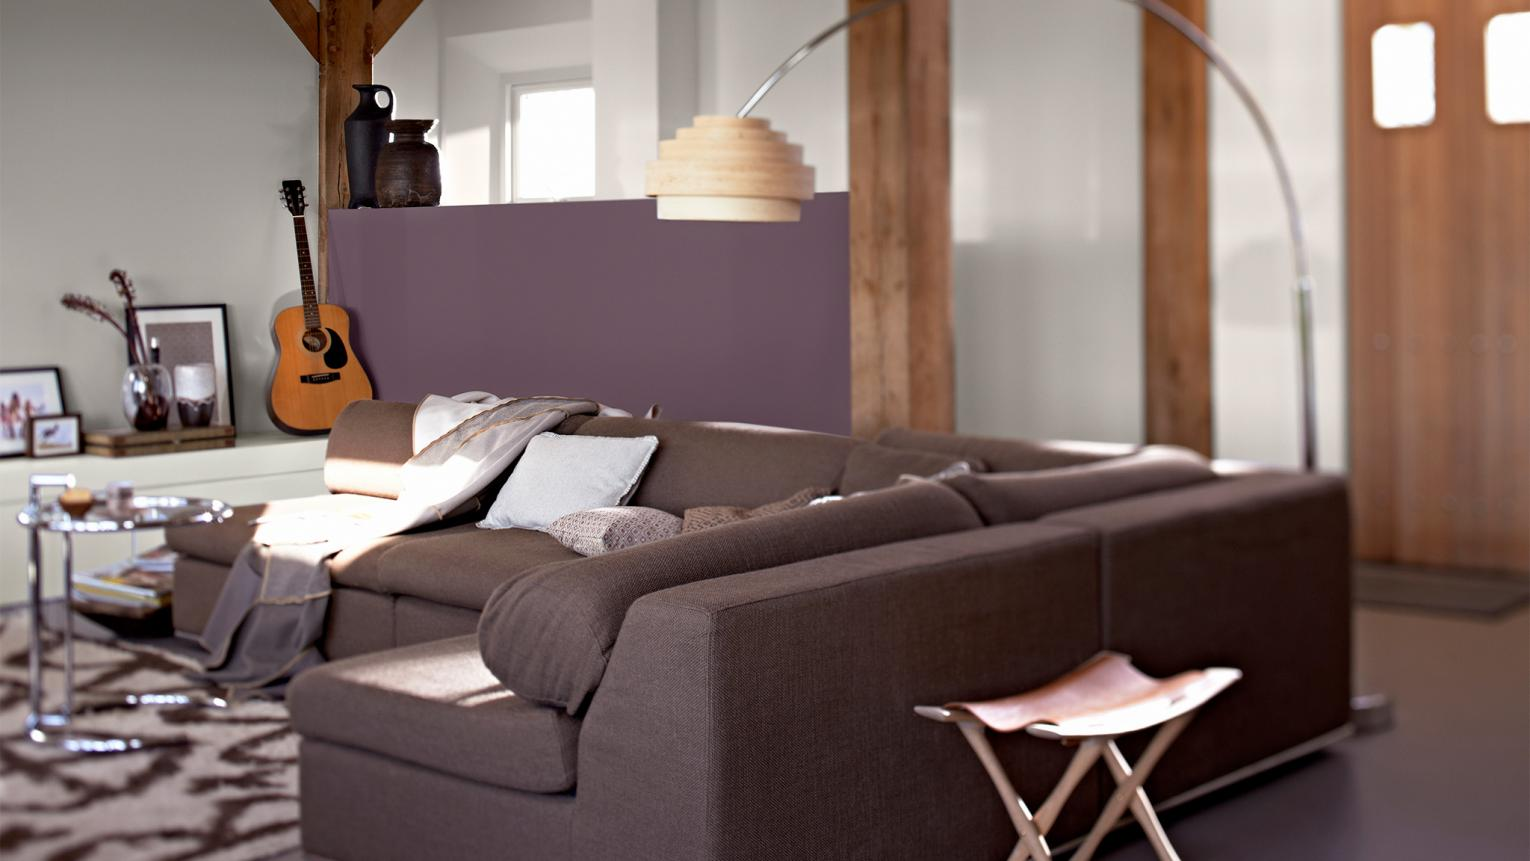 Decorating an open plan living room? Use colour schemes to define different areas in an open-plan room.